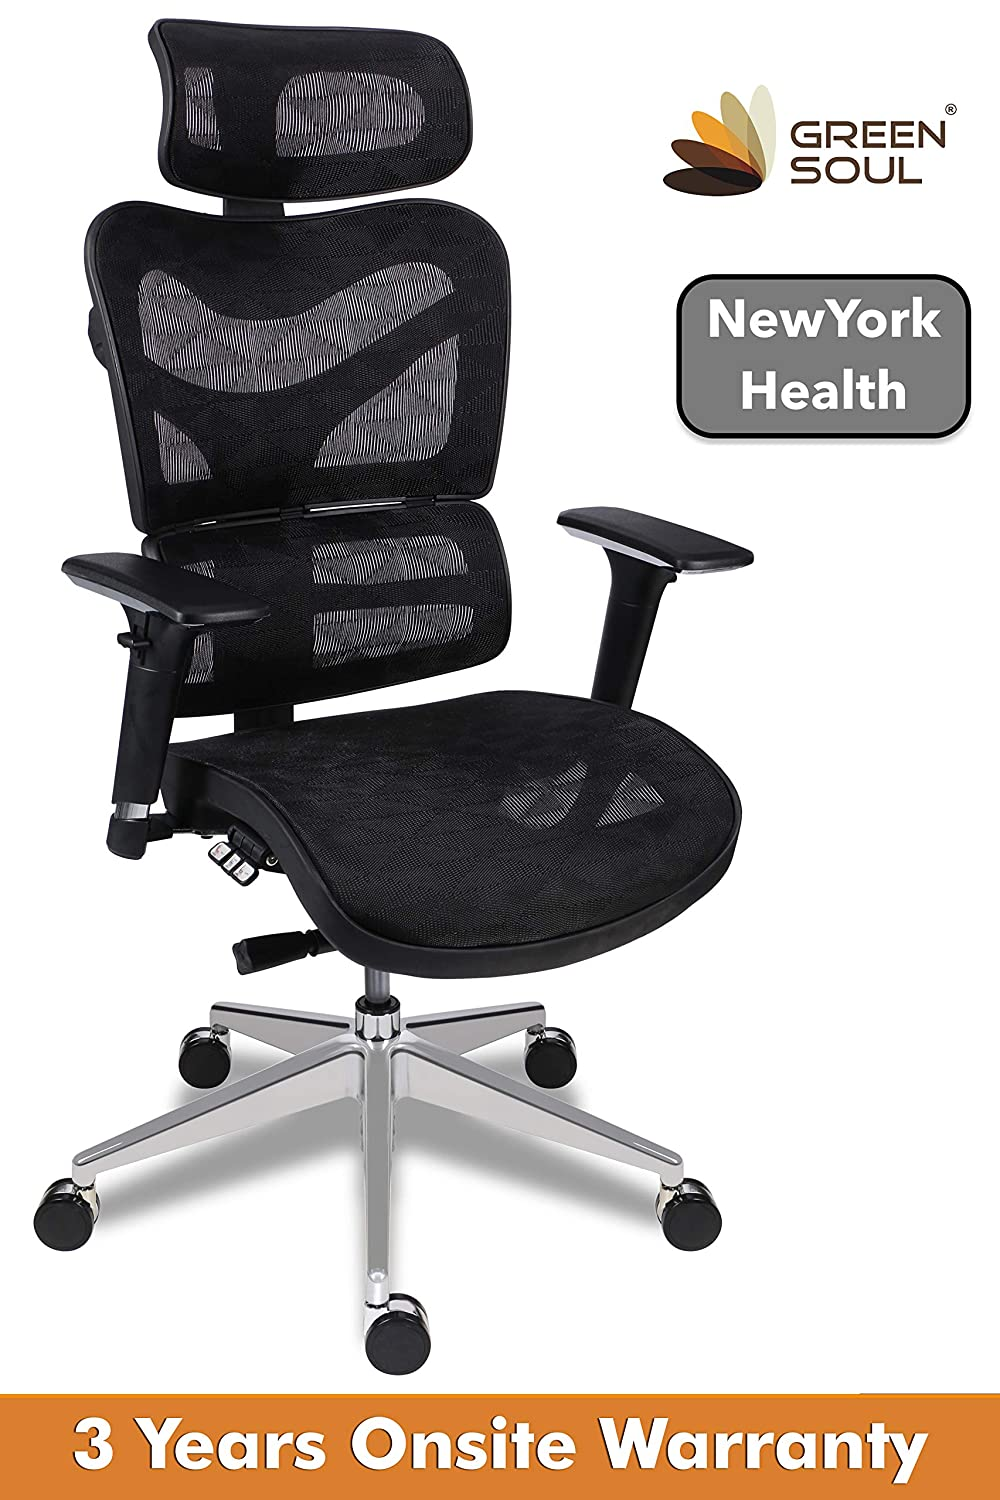 Greensoul New York Health High Back Mesh Office Chair (Black)